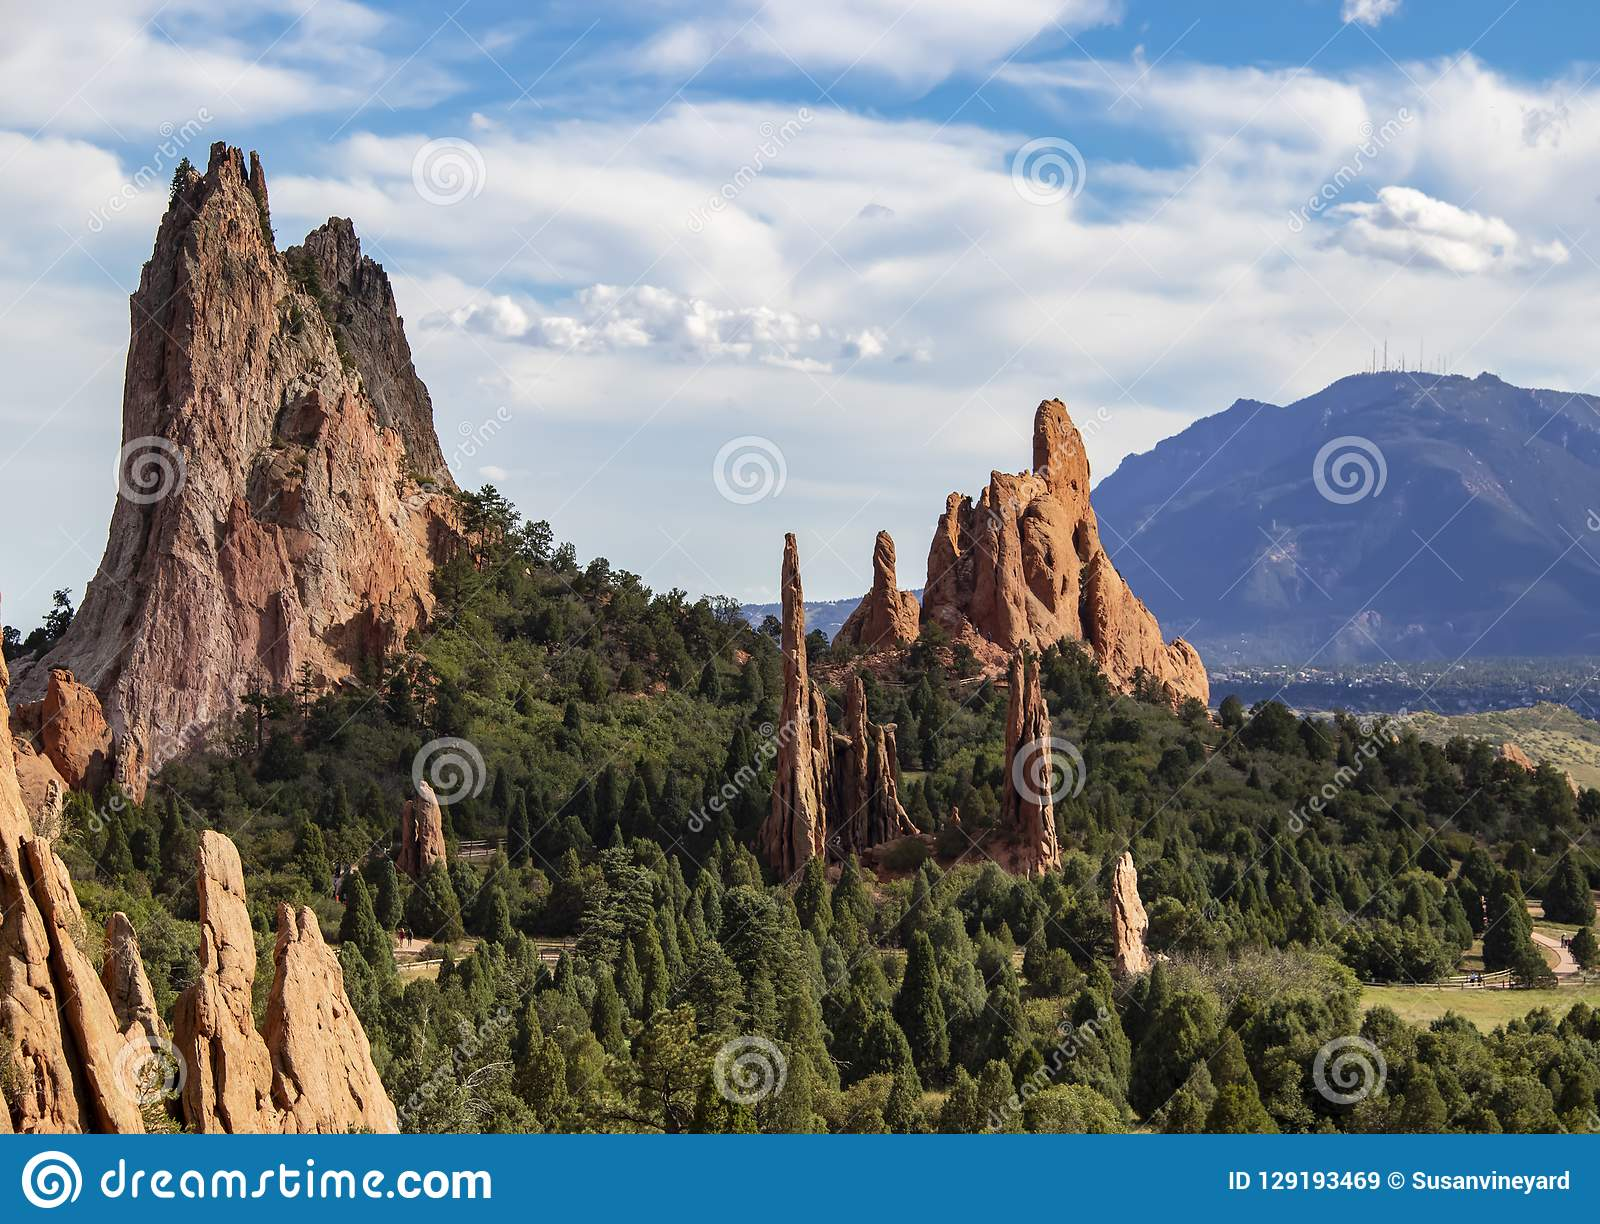 The towering red rock formations of the Garden of the Gods of Colorado Springs with Cheyenne Mountain in the background